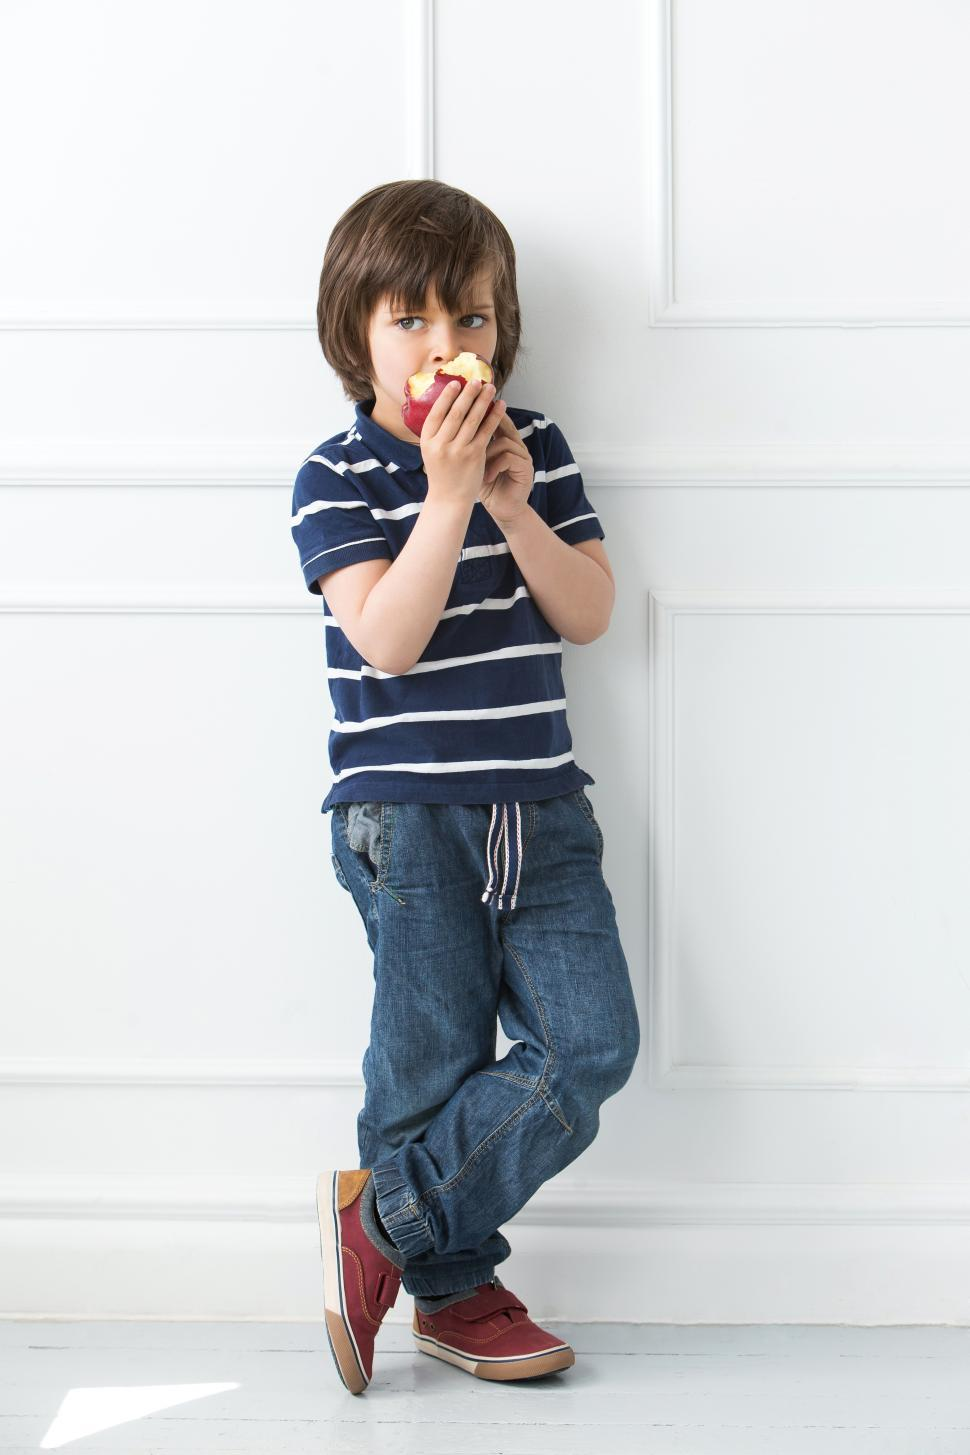 Download Free Stock Photo of Adorable kid standing and eating apple